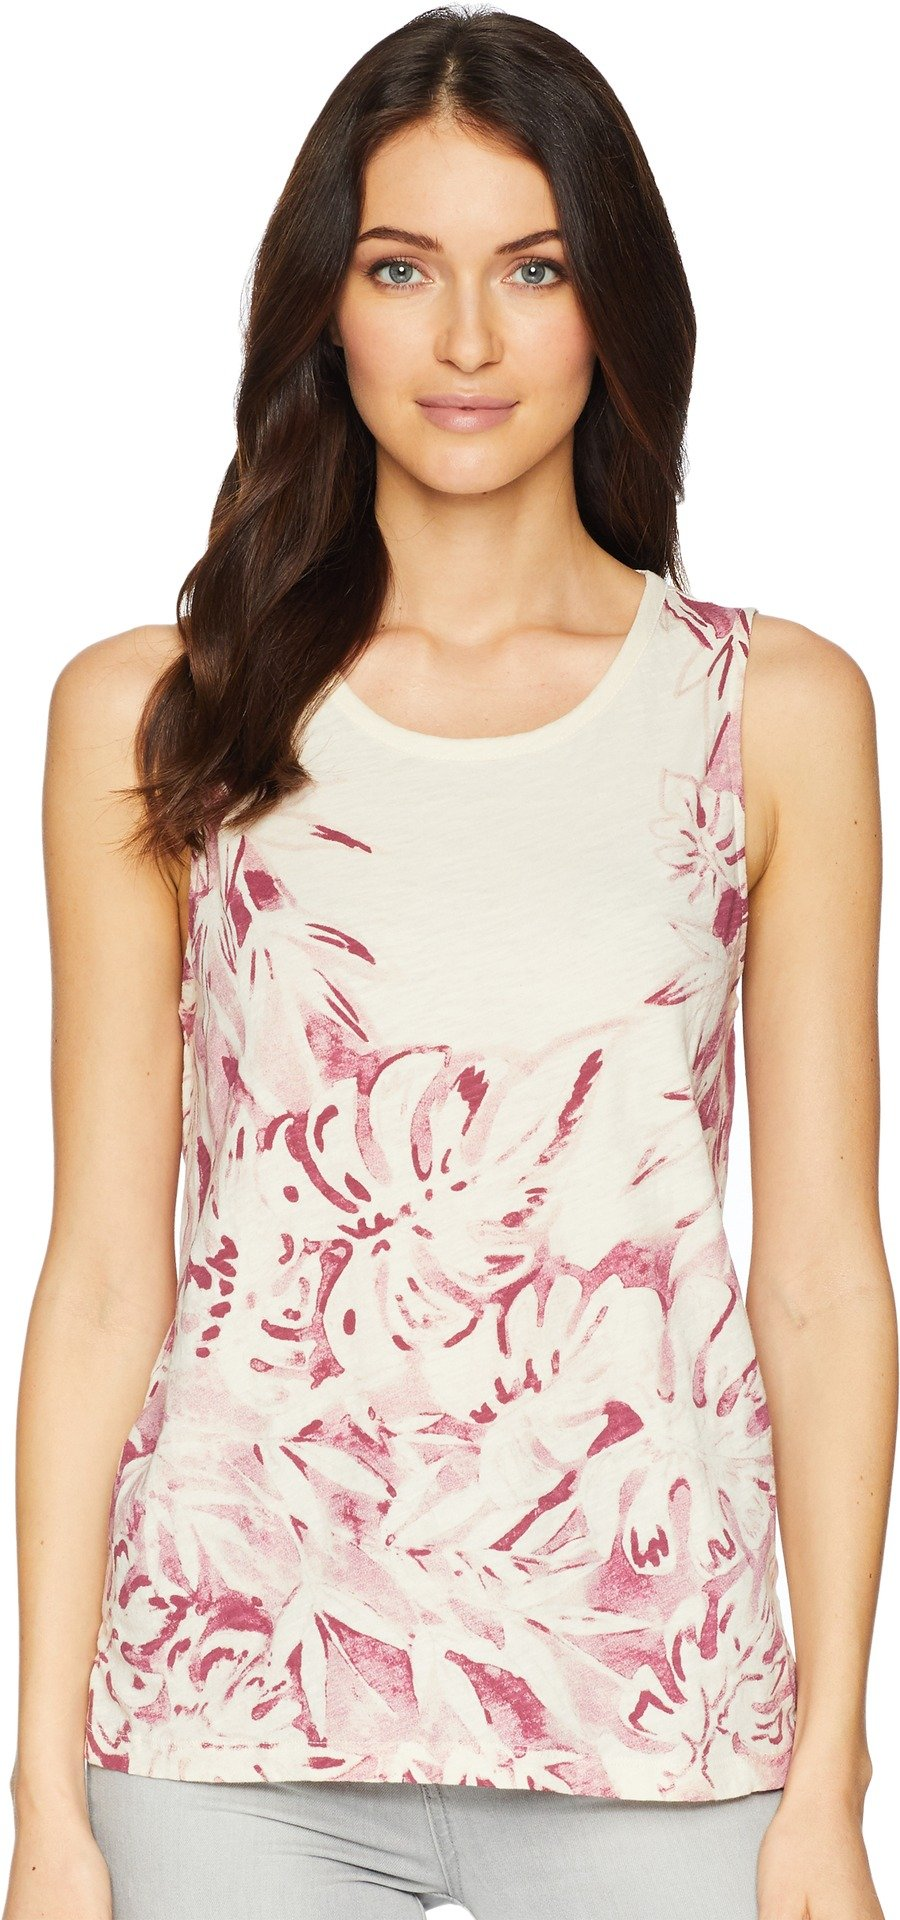 Lucky Brand Women's Printed Floral Tank Top, Berry Multi, L